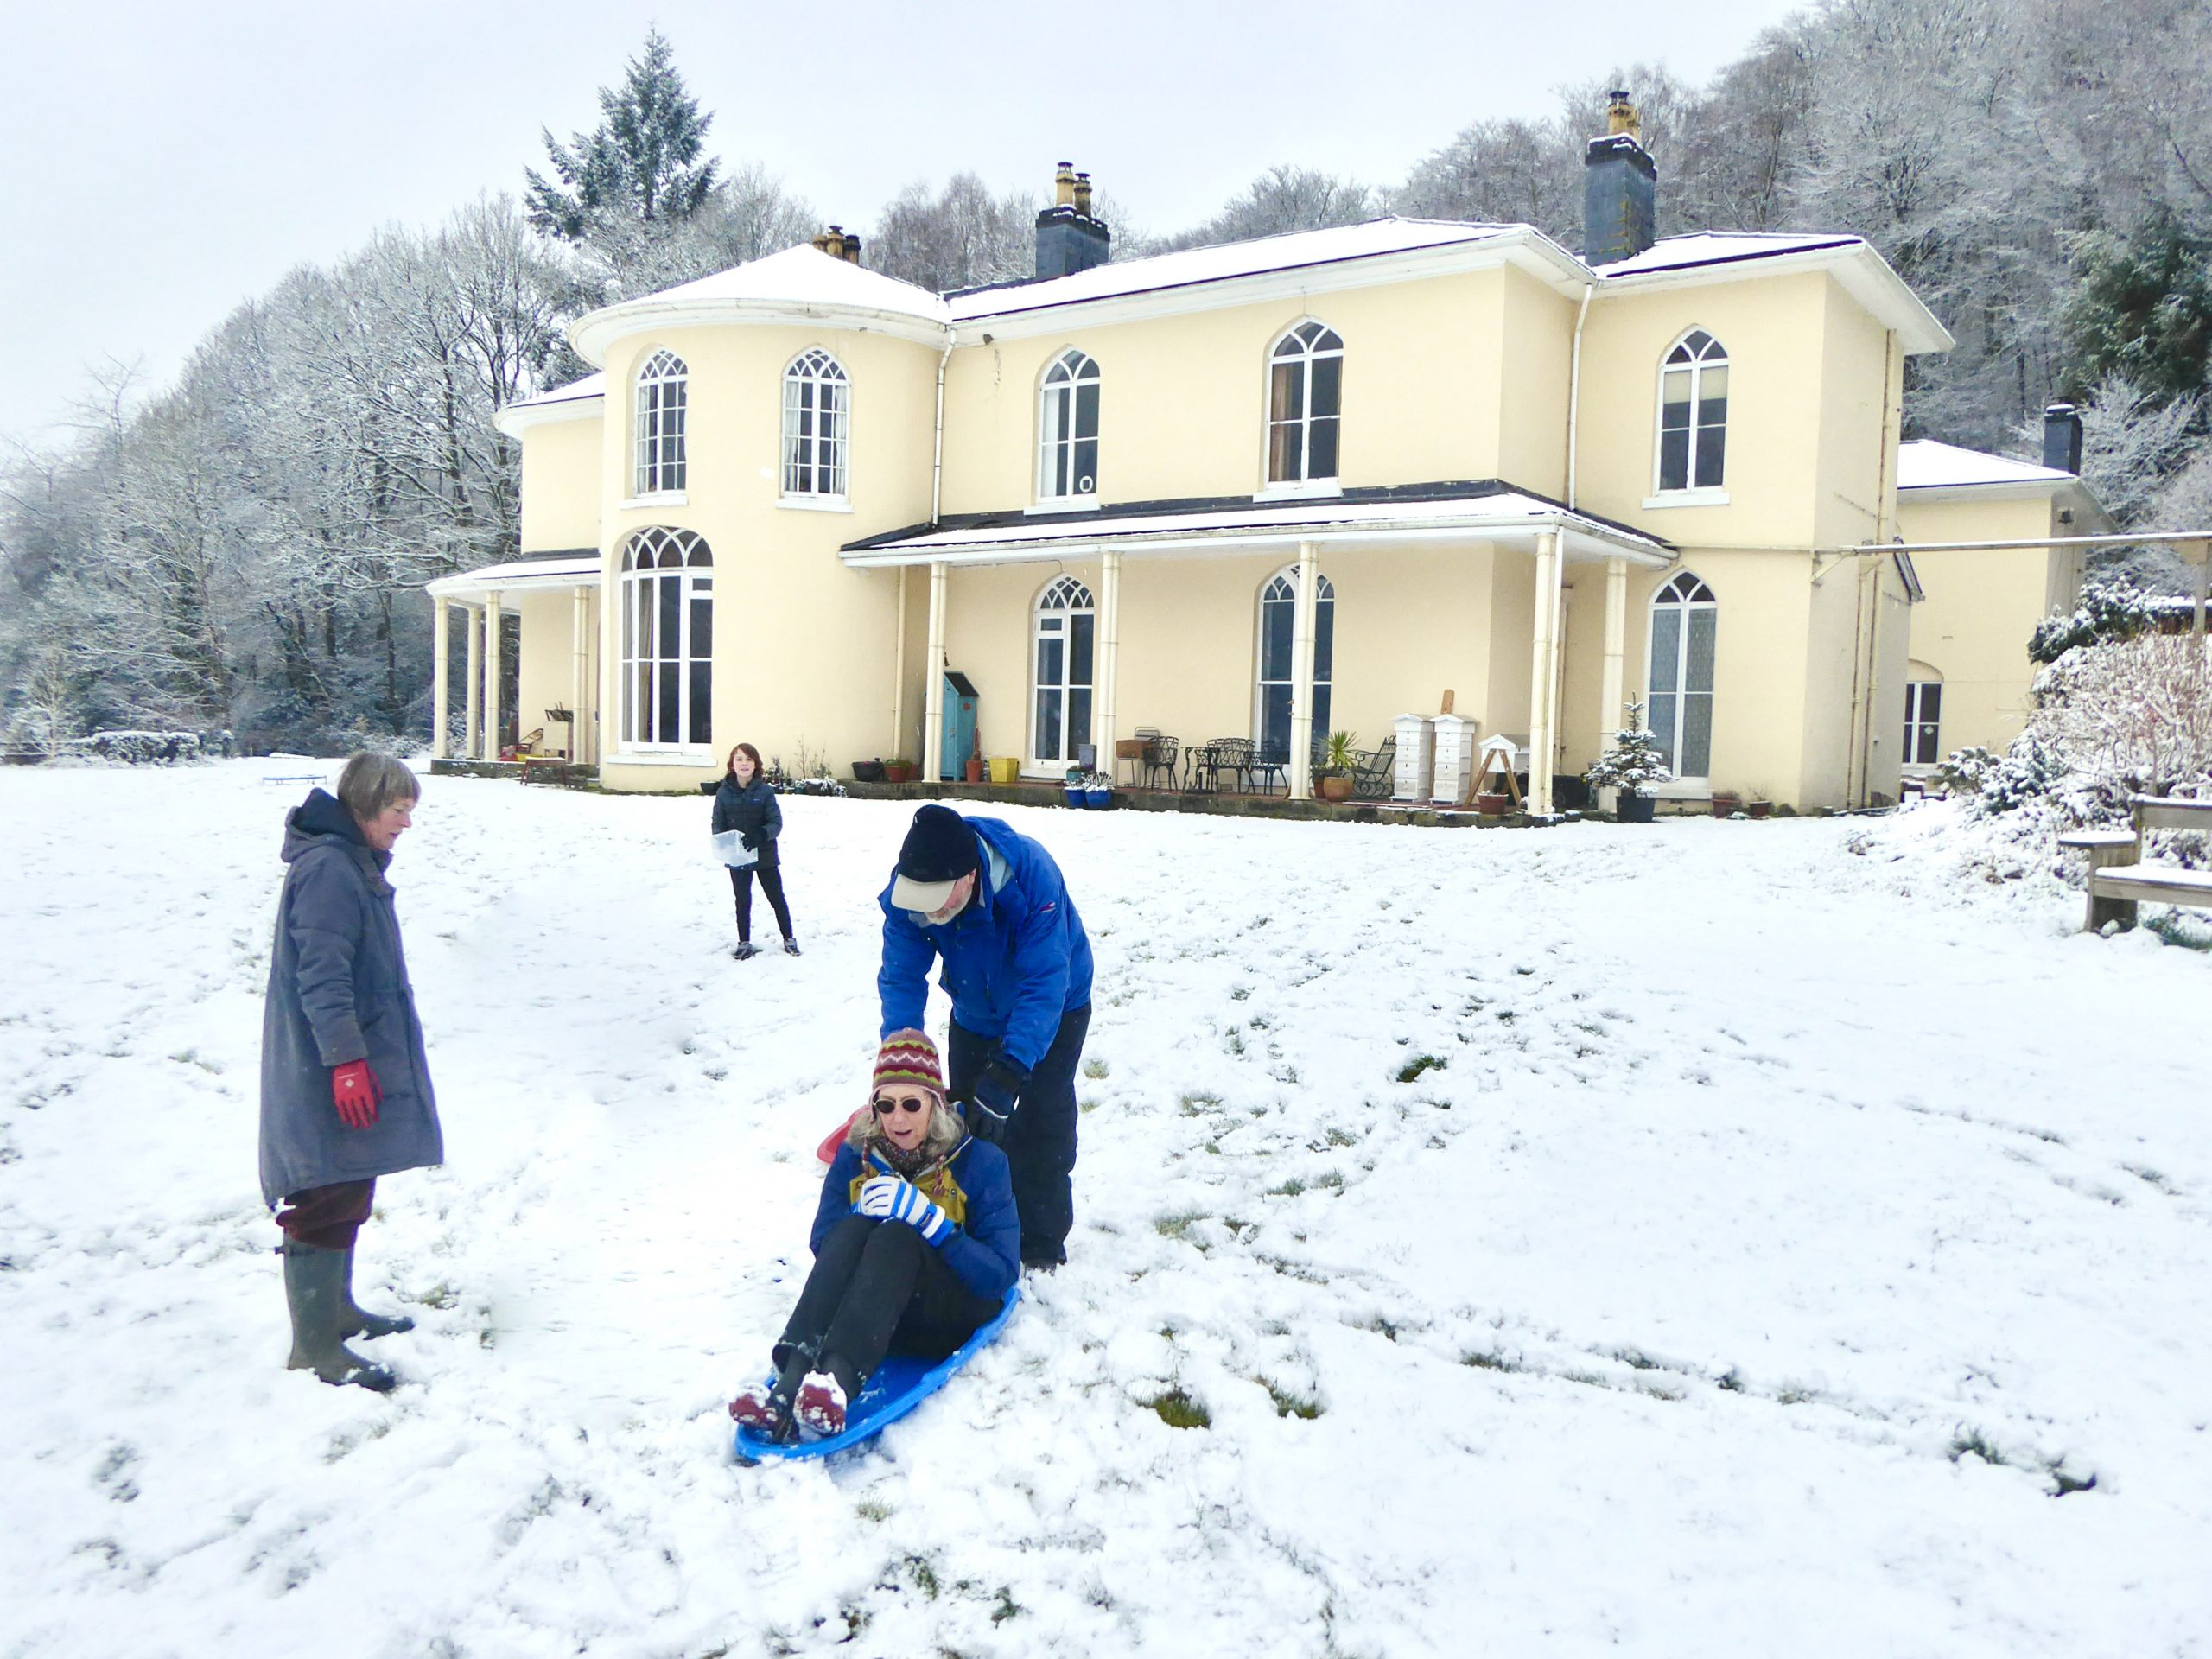 Sledging on the lawn in the snow